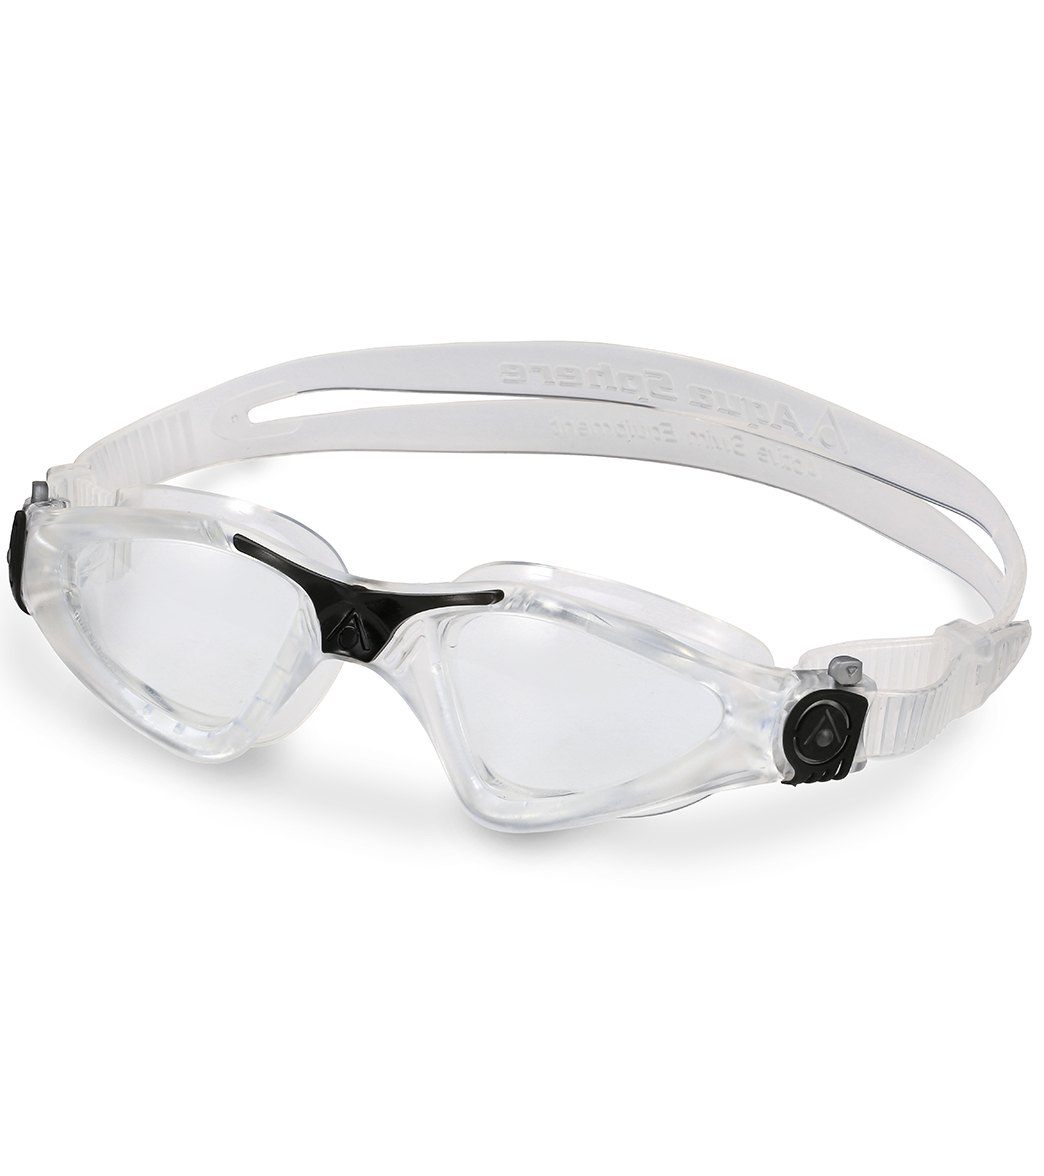 527ad93a6a Aqua Sphere Kayenne Goggle Clear Lens at SwimOutlet.com